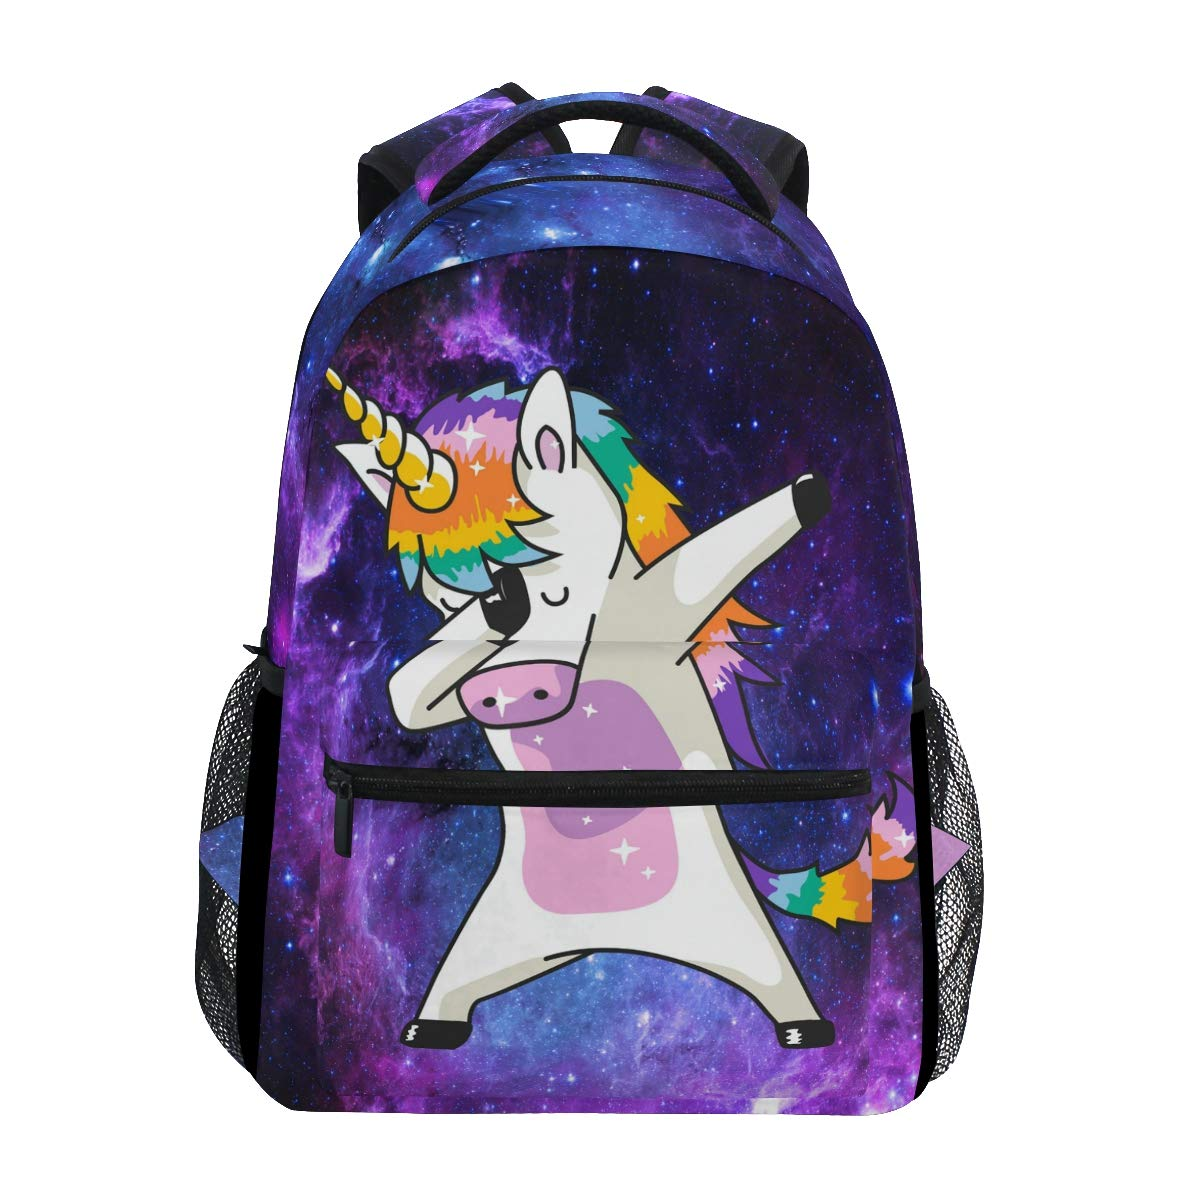 Wamika Dabbing Unicorn Backpacks Nebula Galaxy Laptop Book Bag Cute Funny Casual Extra Durable Backpack Lightweight Travel Sports Day Pack for Men Women by Wamika